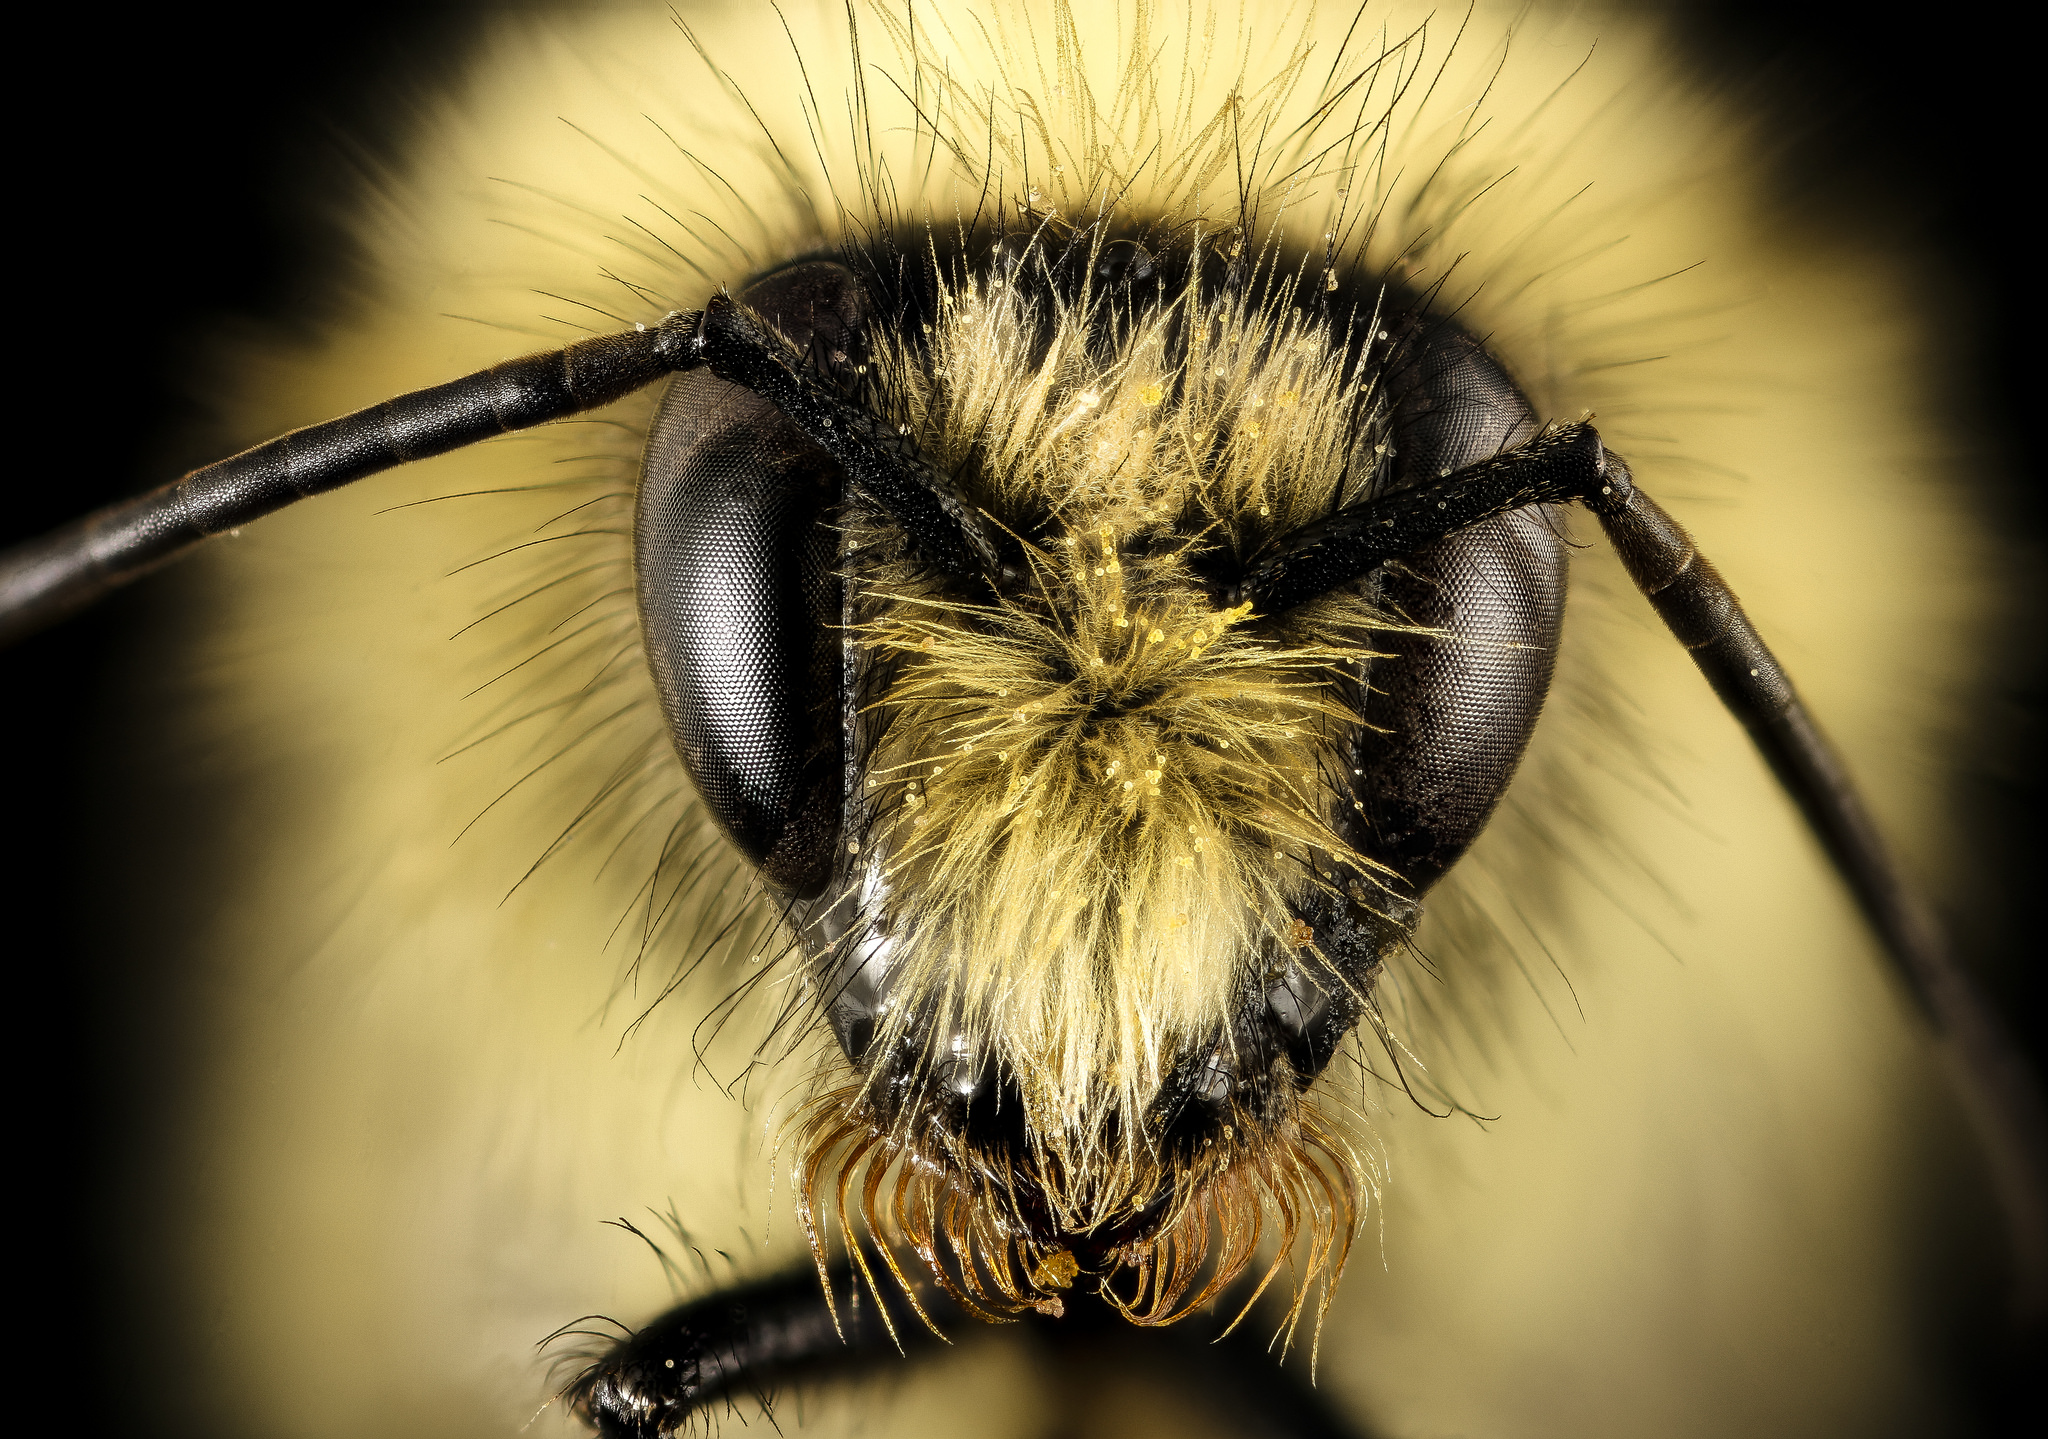 Want to know how to save the bees?